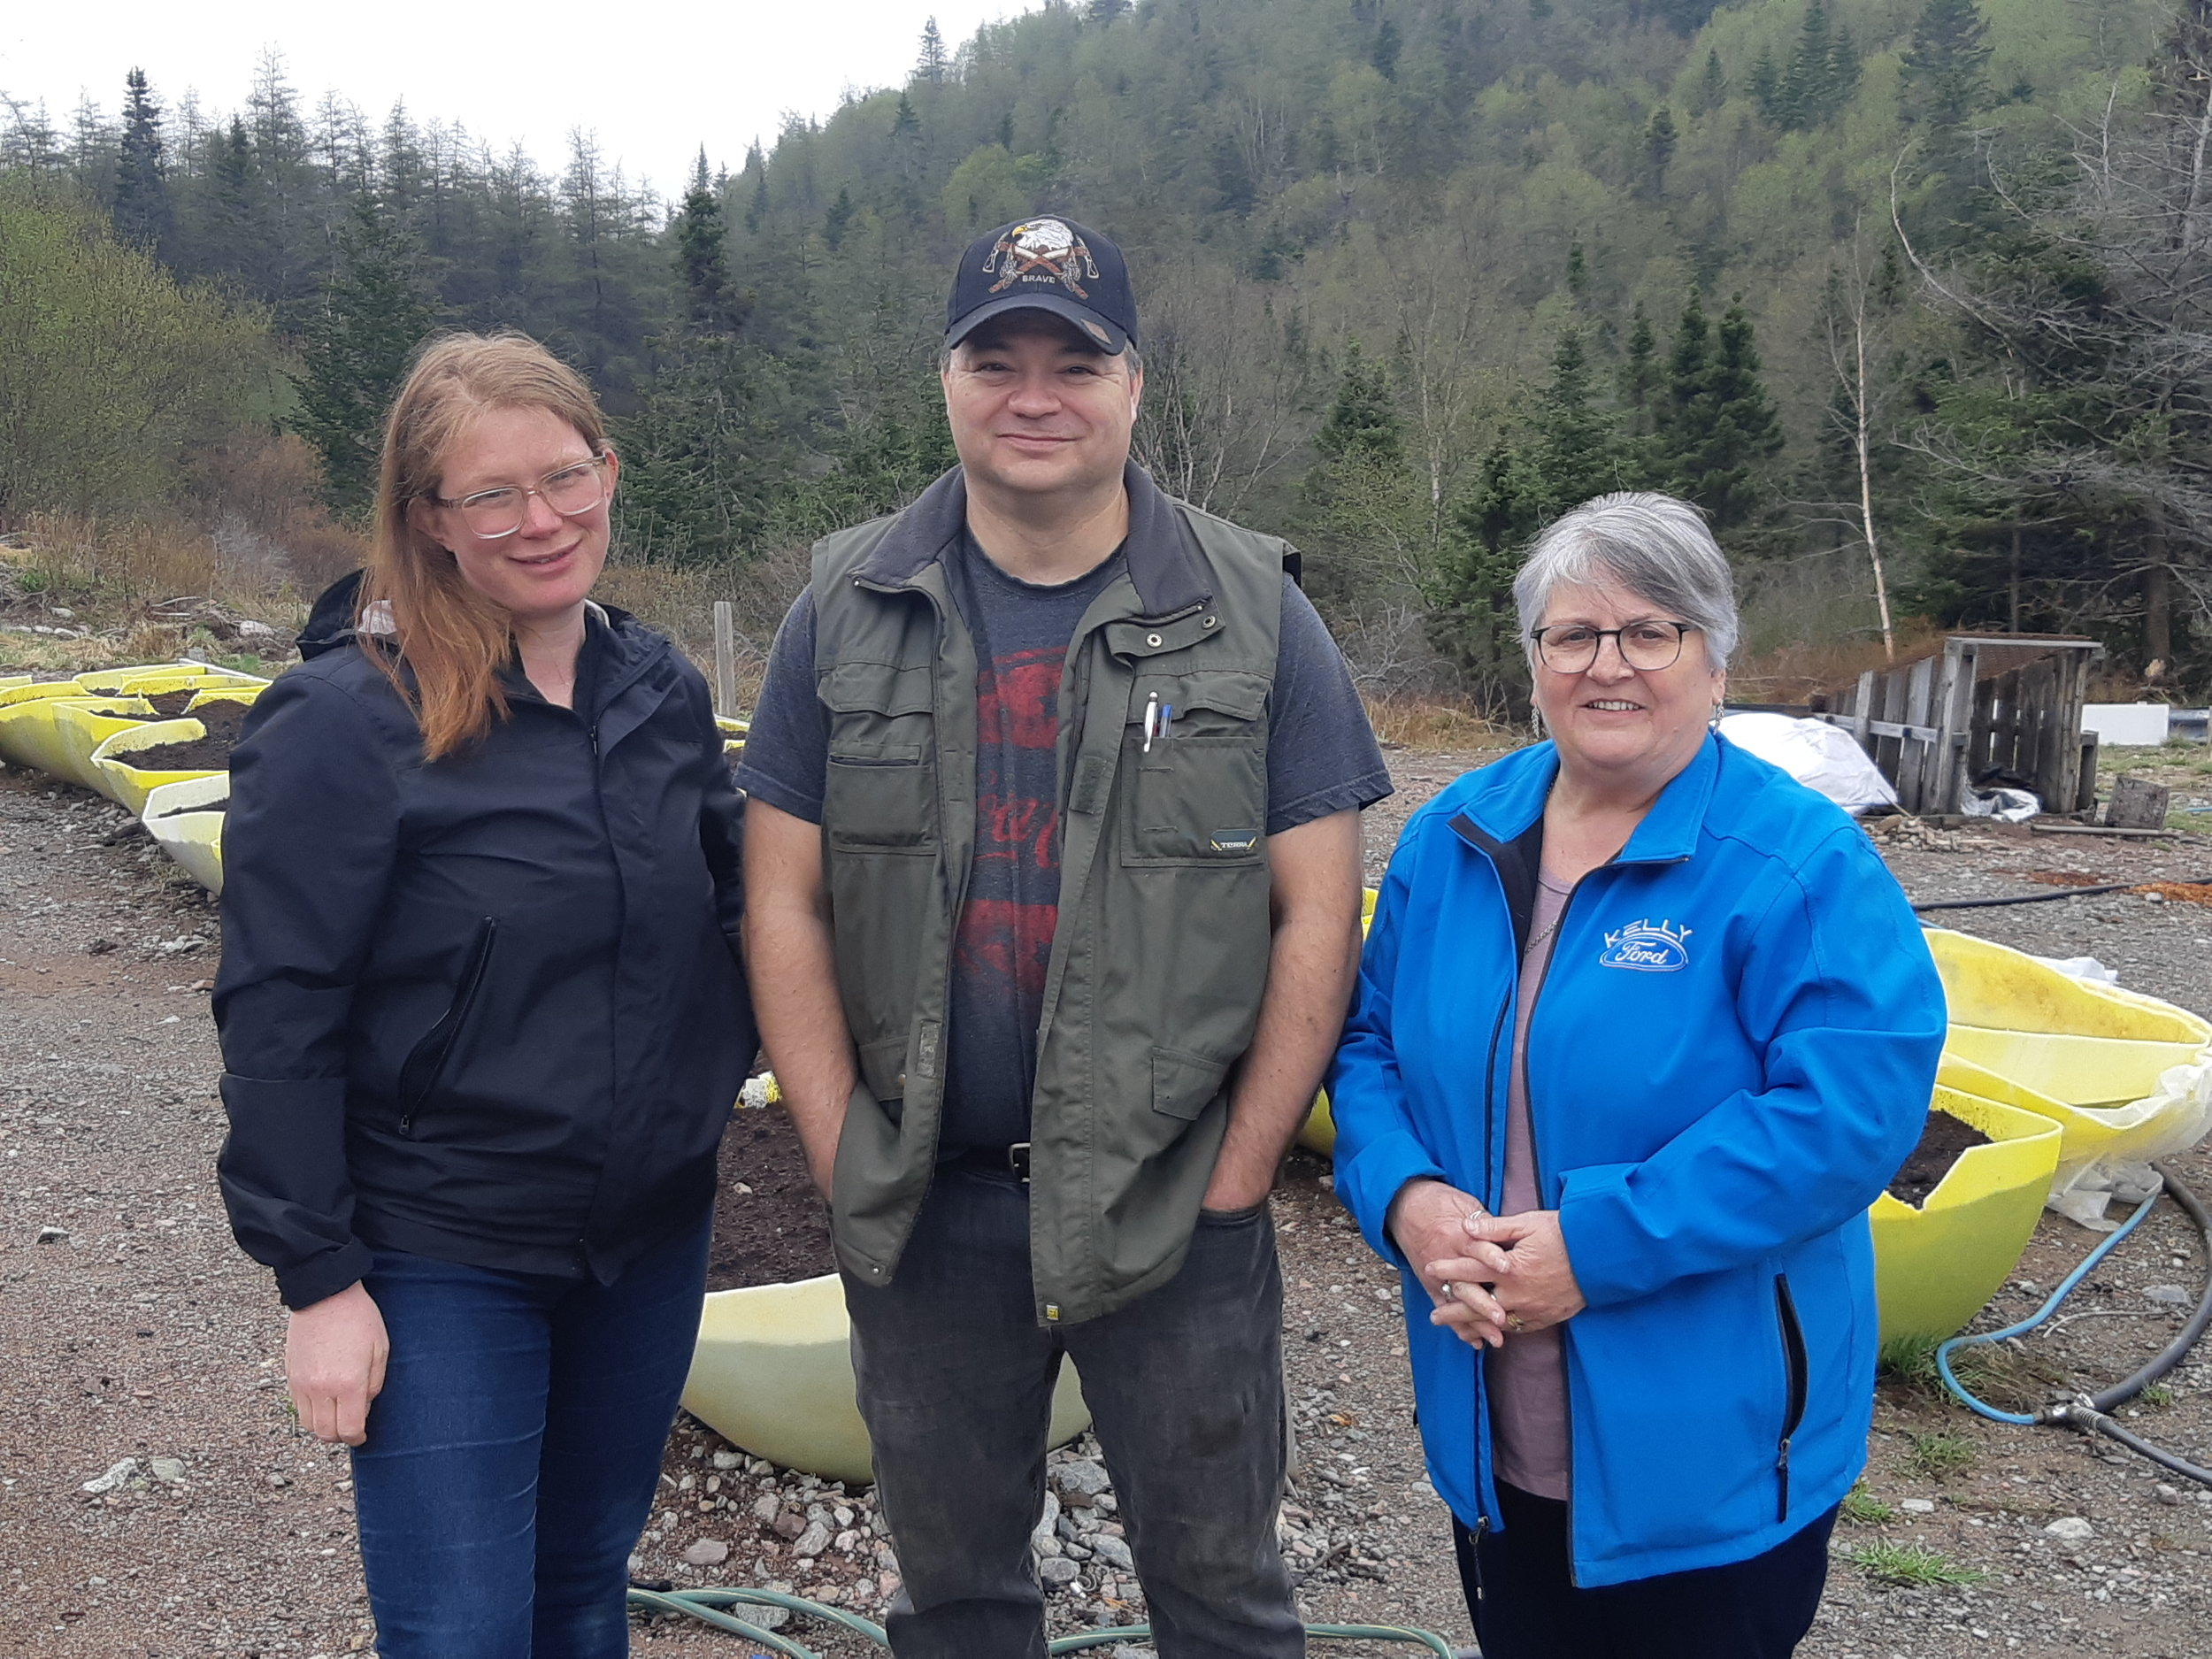 Sarah Crocker, Tim Drew, and Josephine Marshall at the Pool's Cove Community Garden.